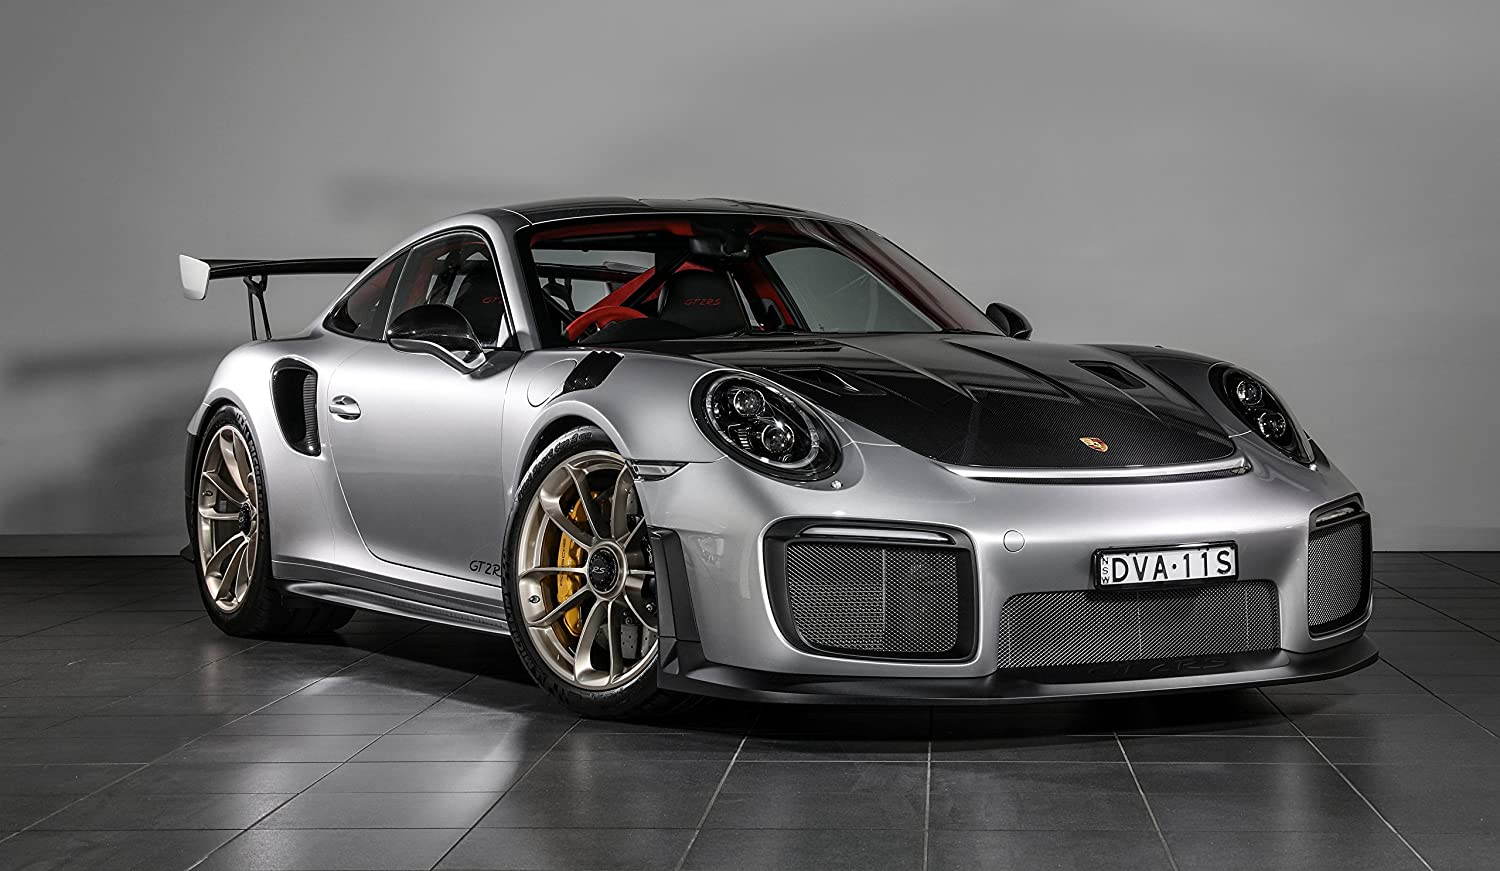 Amazon.com: Porsche 911 GT2 RS (2018) Car Print on 10 Mil Archival Satin Paper Silver/Black Front Side Static View 24